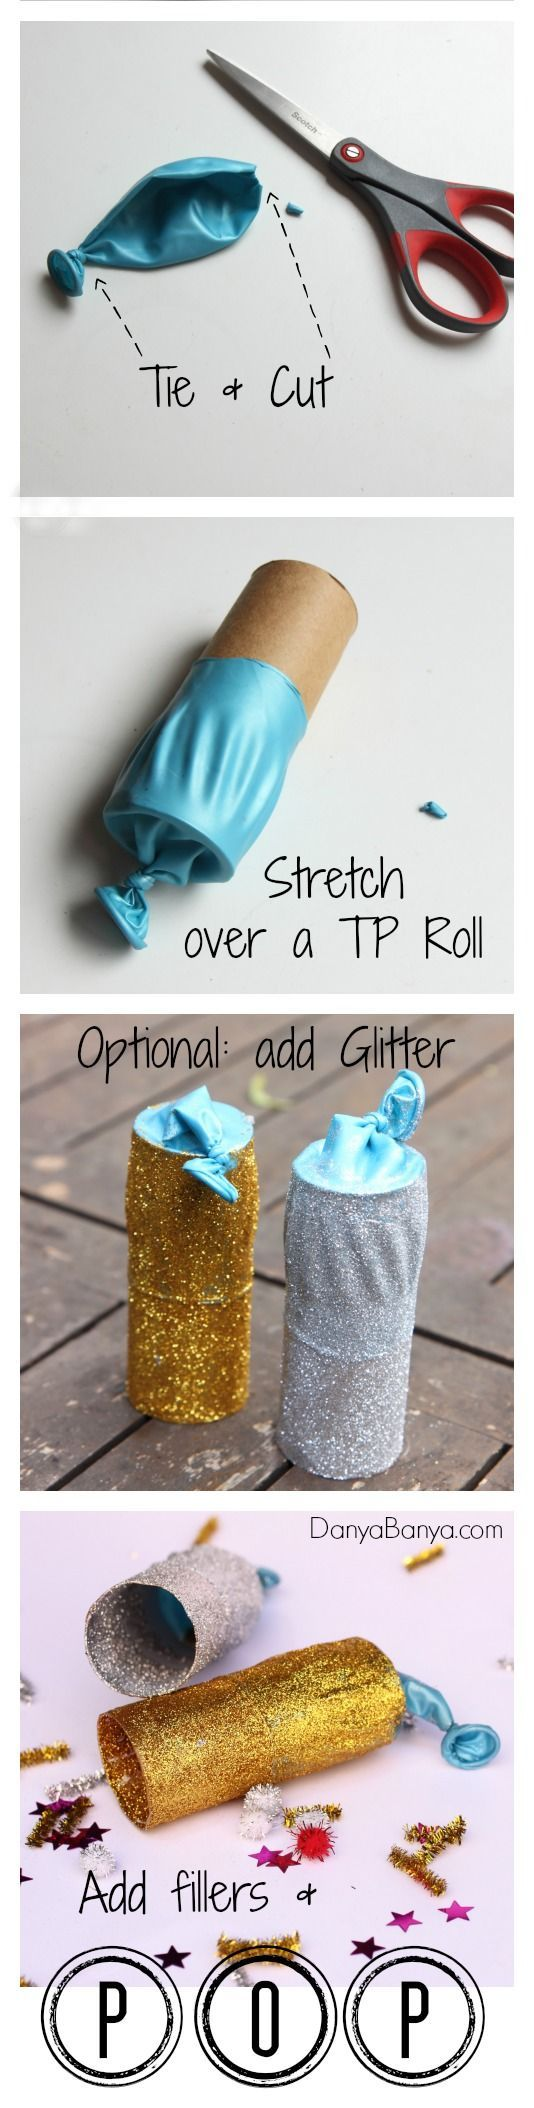 Easy DIY glitter party poppers - fun for kids parties or New Years Eve.